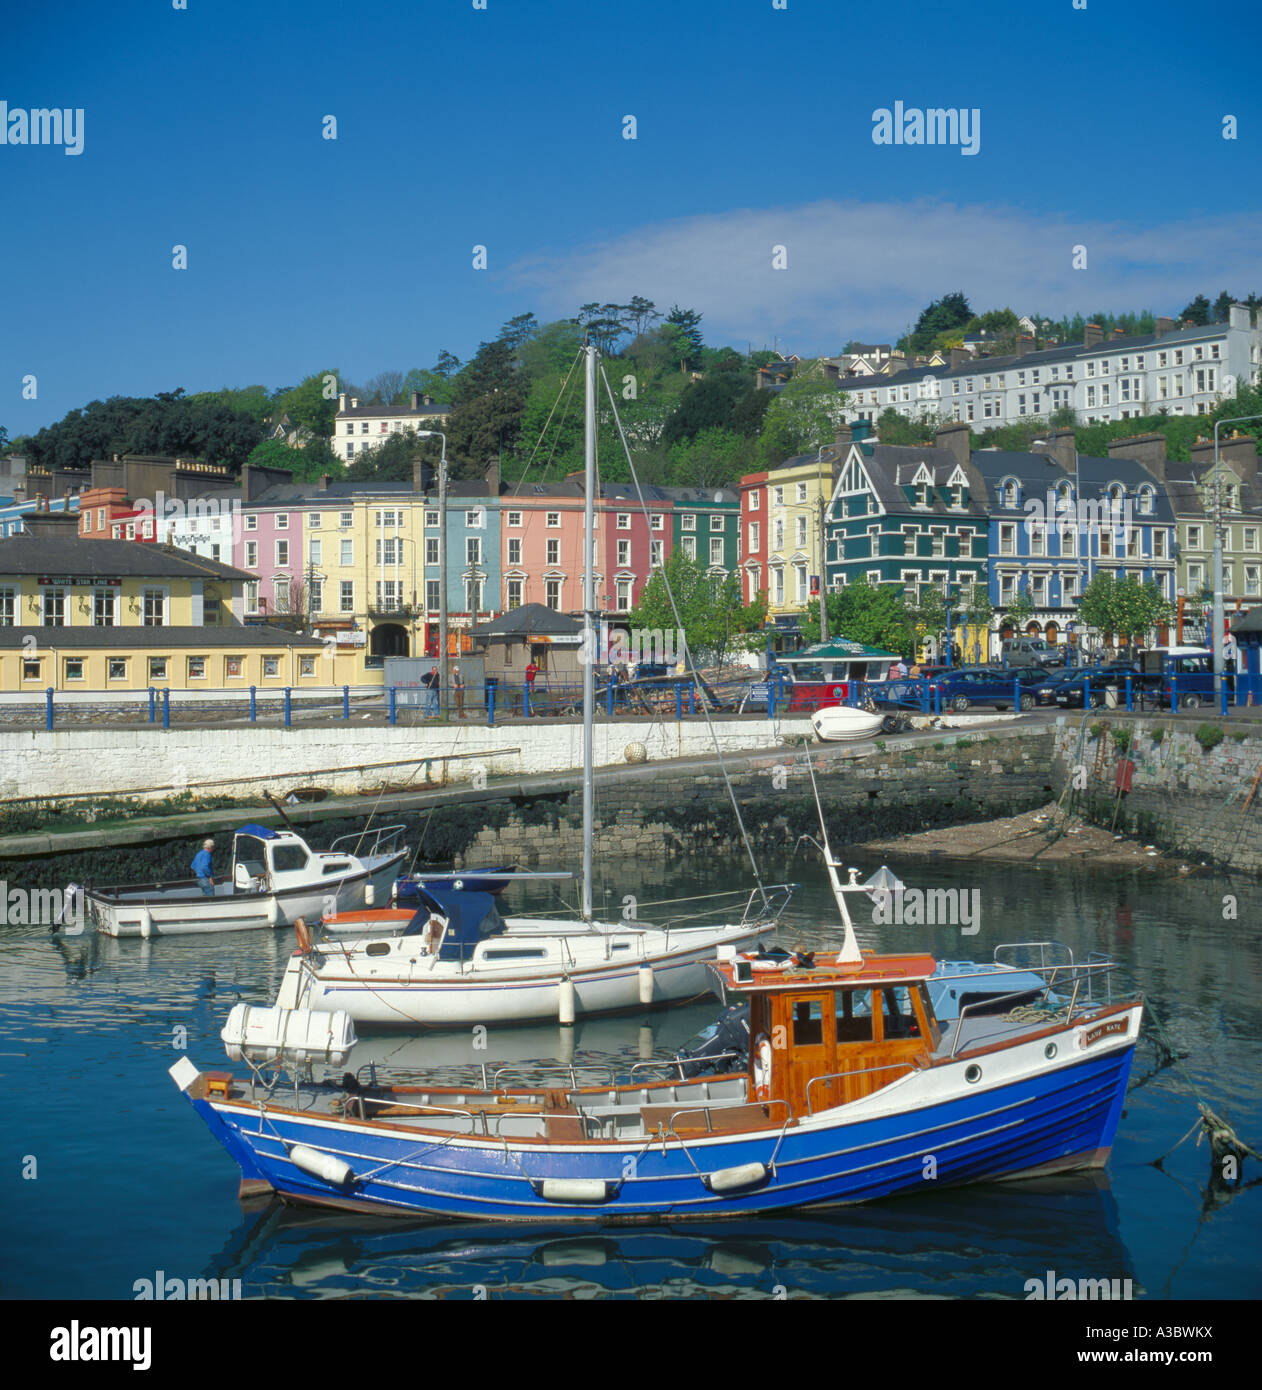 Boats, harbour and waterfront buildings, Cobh, Waterford, Eire. - Stock Image